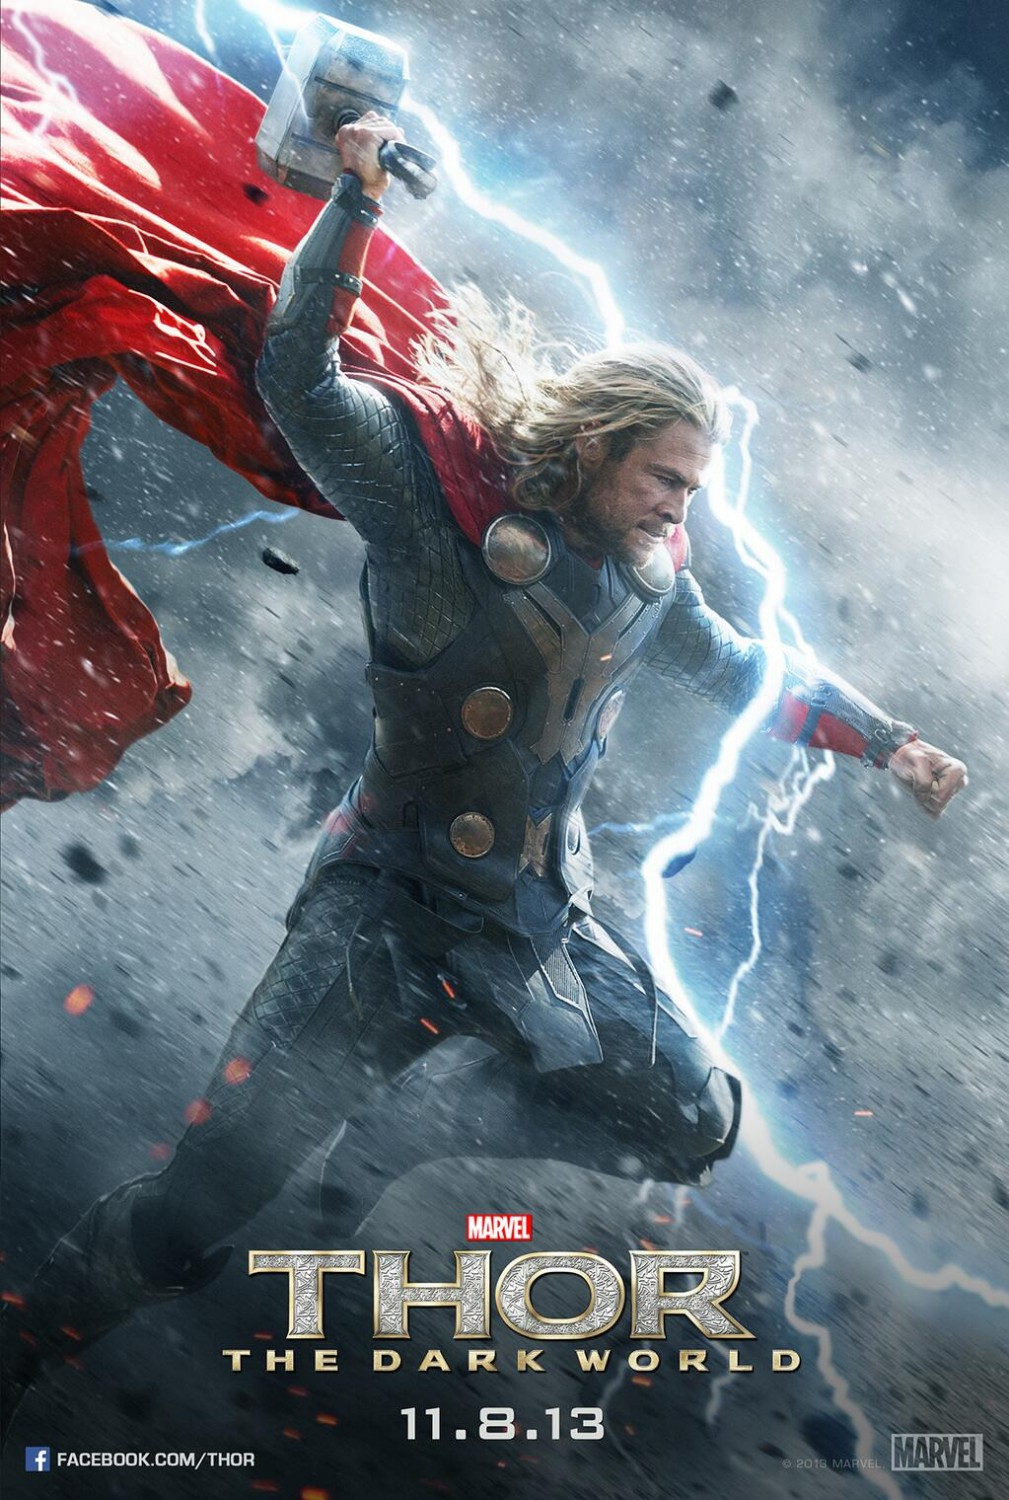 Thor The Dark World-Offcial Poster Banner PROMO CHAR-27AGOSTO2013-02